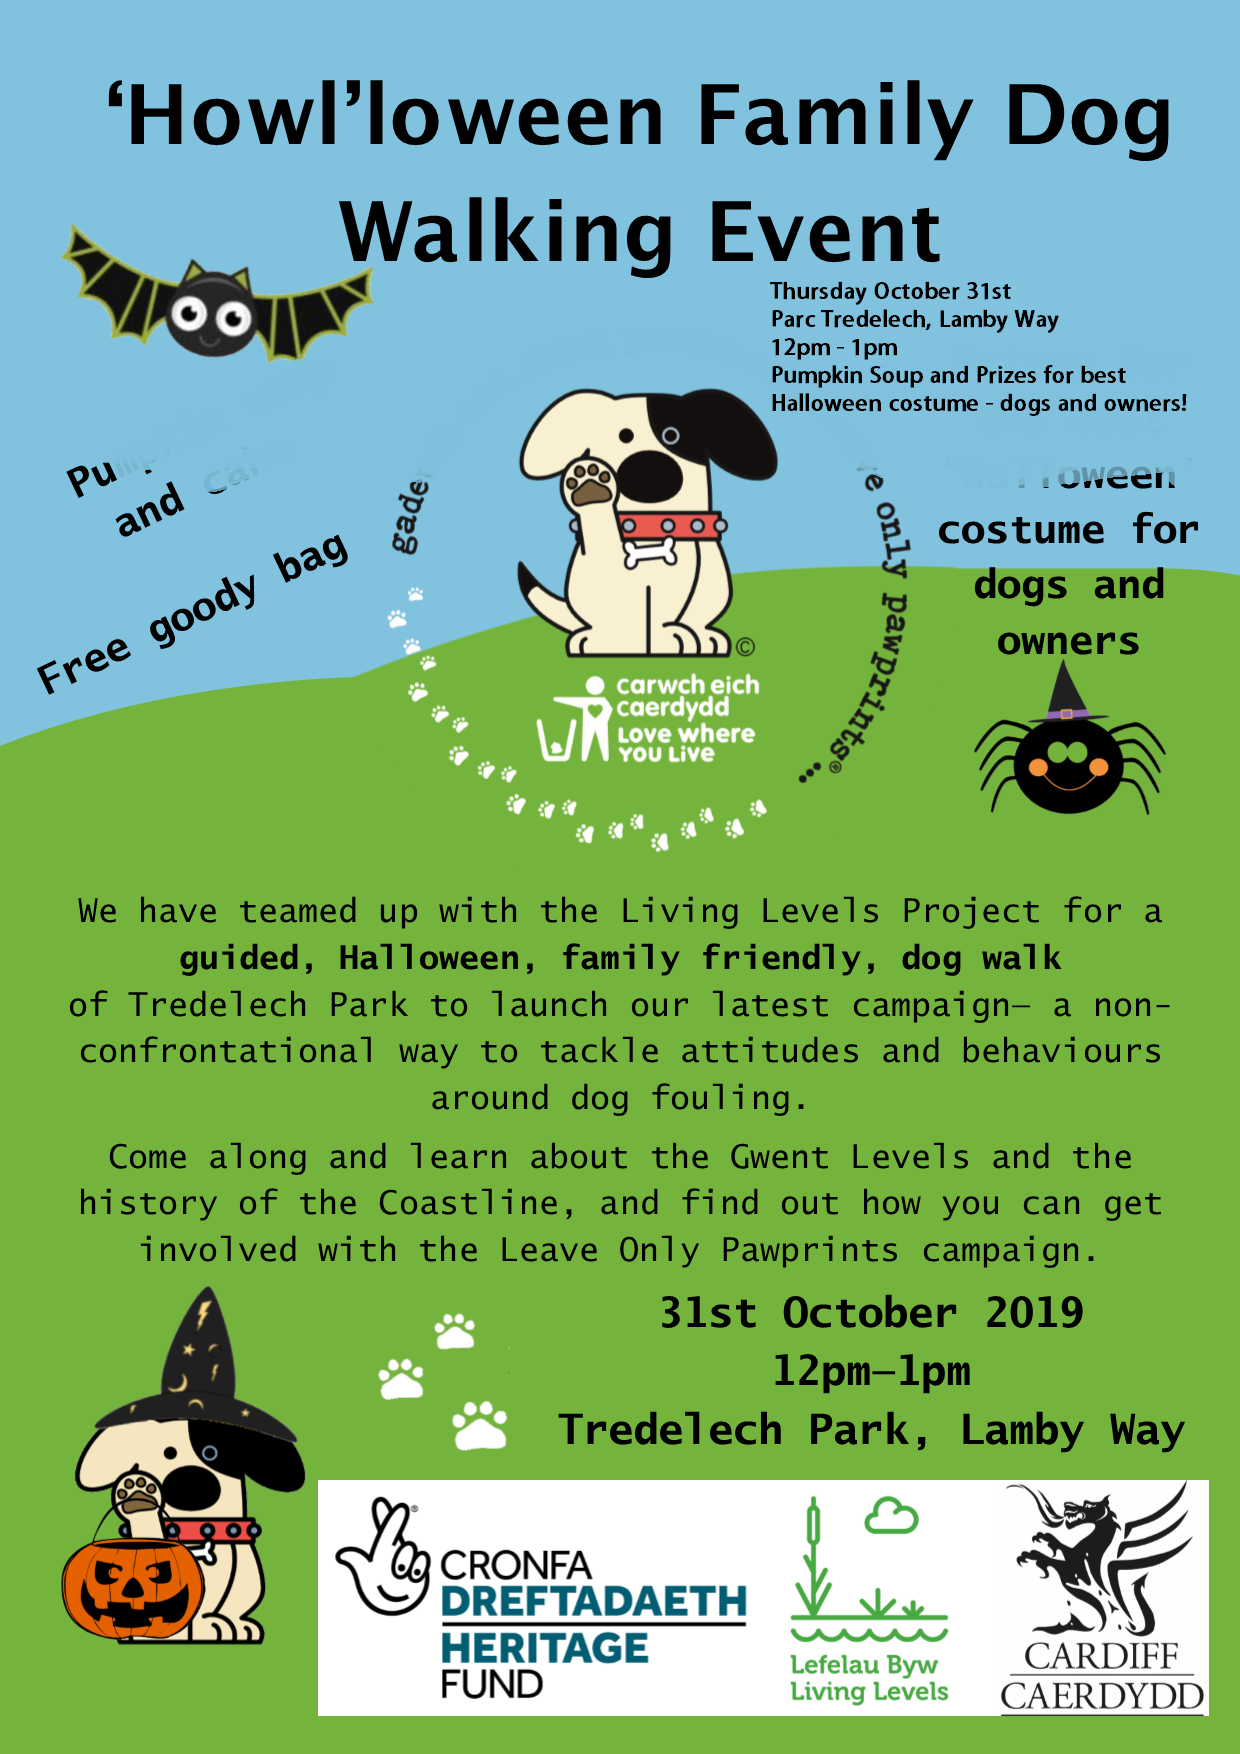 'Howl'loween Family Dog Walking Event